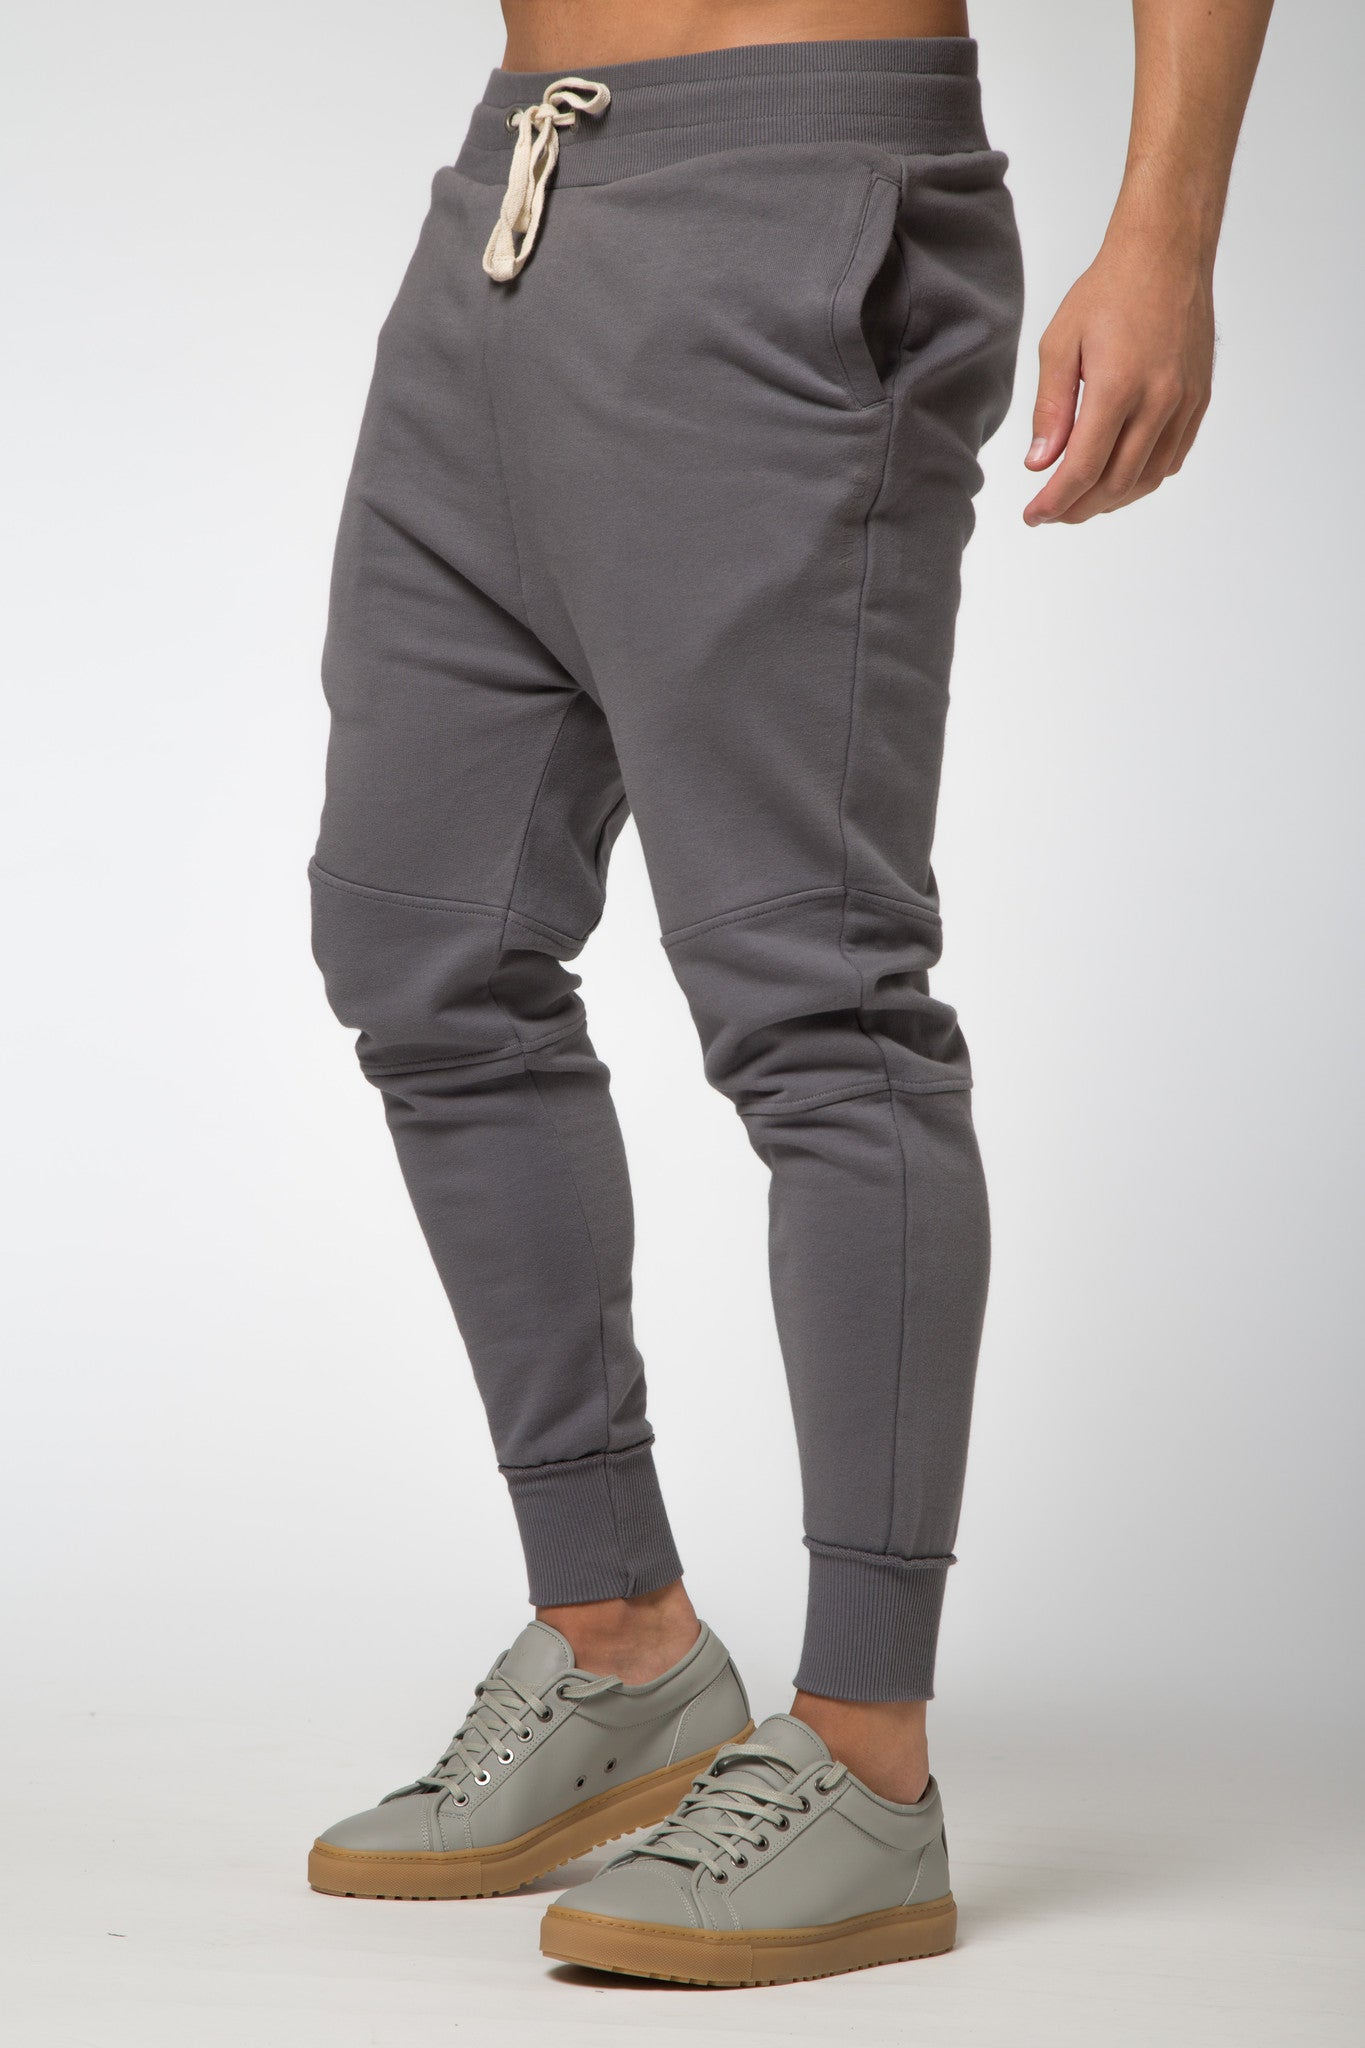 Avid & Co. [ Taylor ] Sweatpant Charcoal